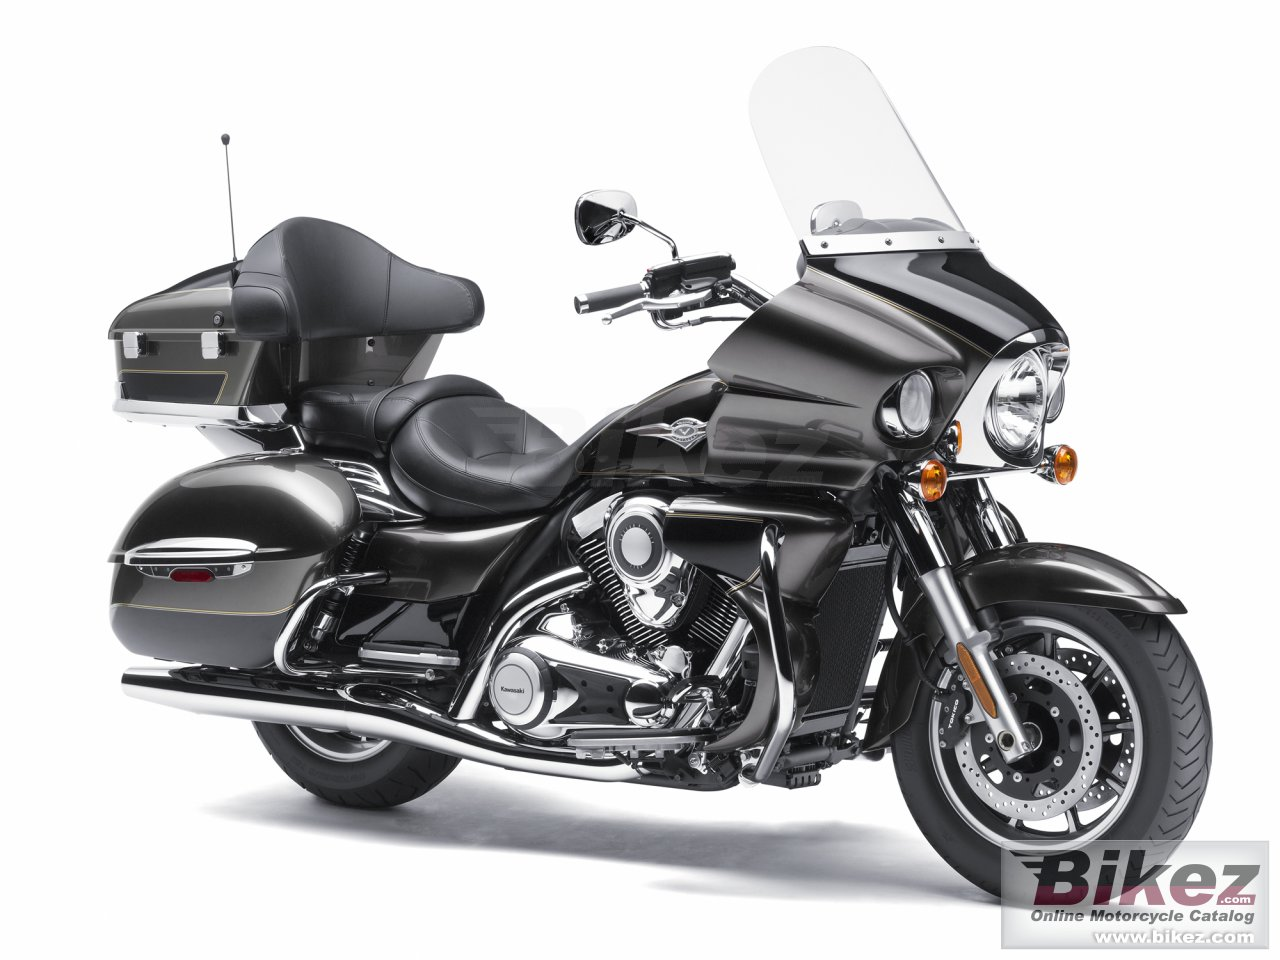 Big Kawasaki vulcan 1700 voyager abs picture and wallpaper from Bikez.com